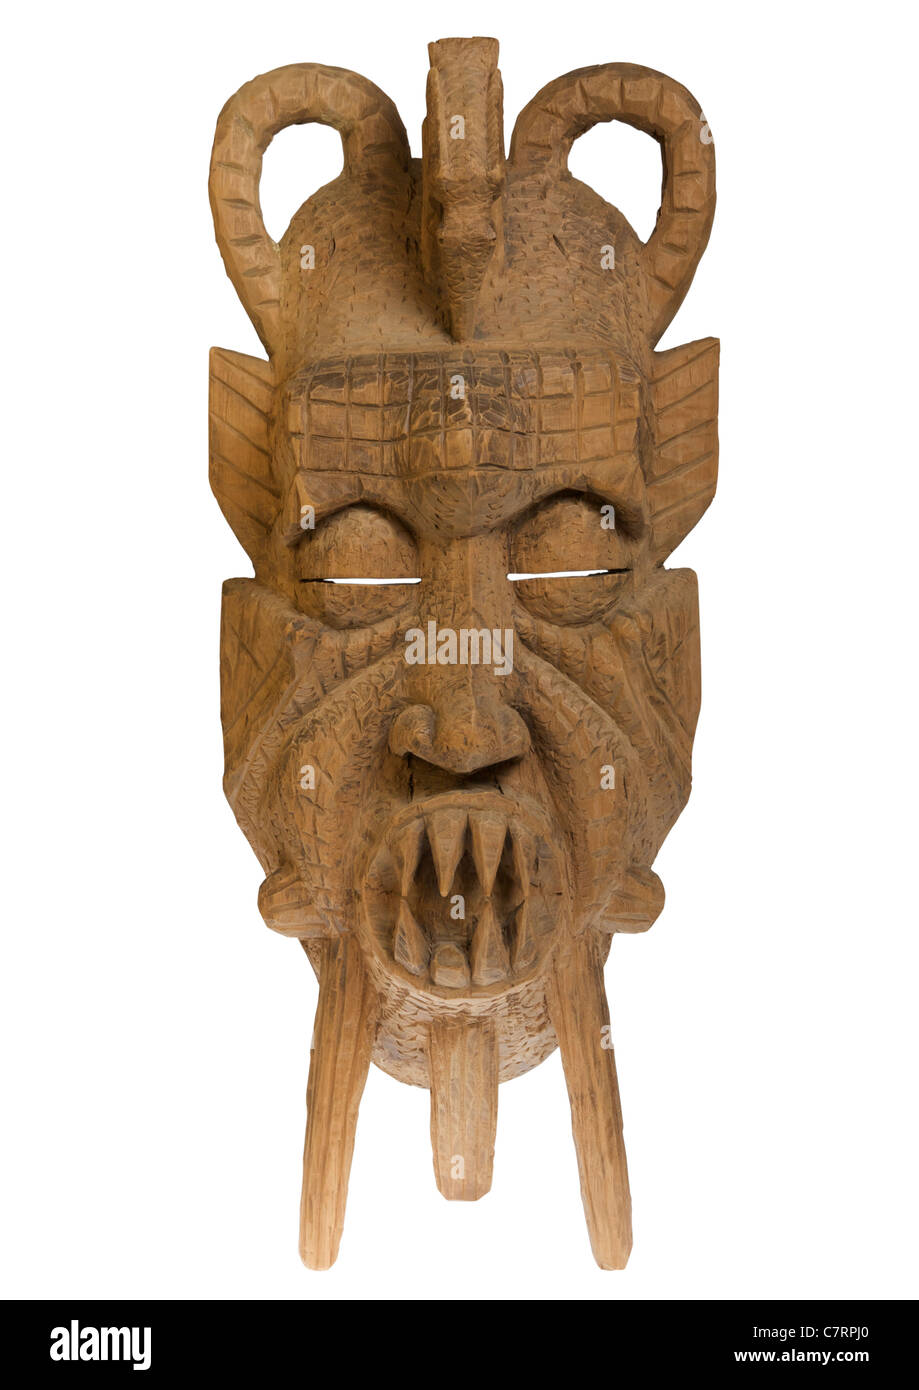 Carved wooden Ghanaian mask on white background - Stock Image